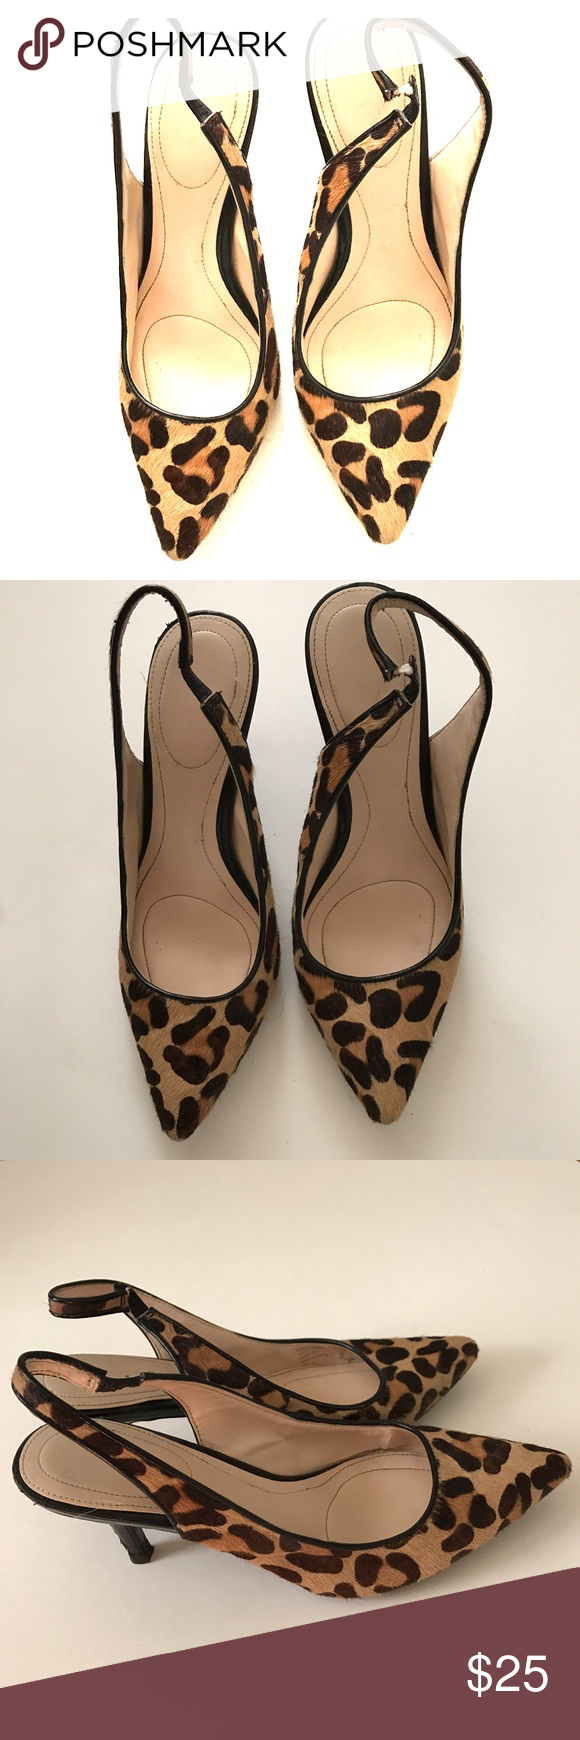 ce632e8b2984 Calvin Klein animal print sling back heels Calvin Klein animal print faux  pony fur sling back heels. Size 7 1 2. 3 inch heals. Good condition Calvin  Klein ...